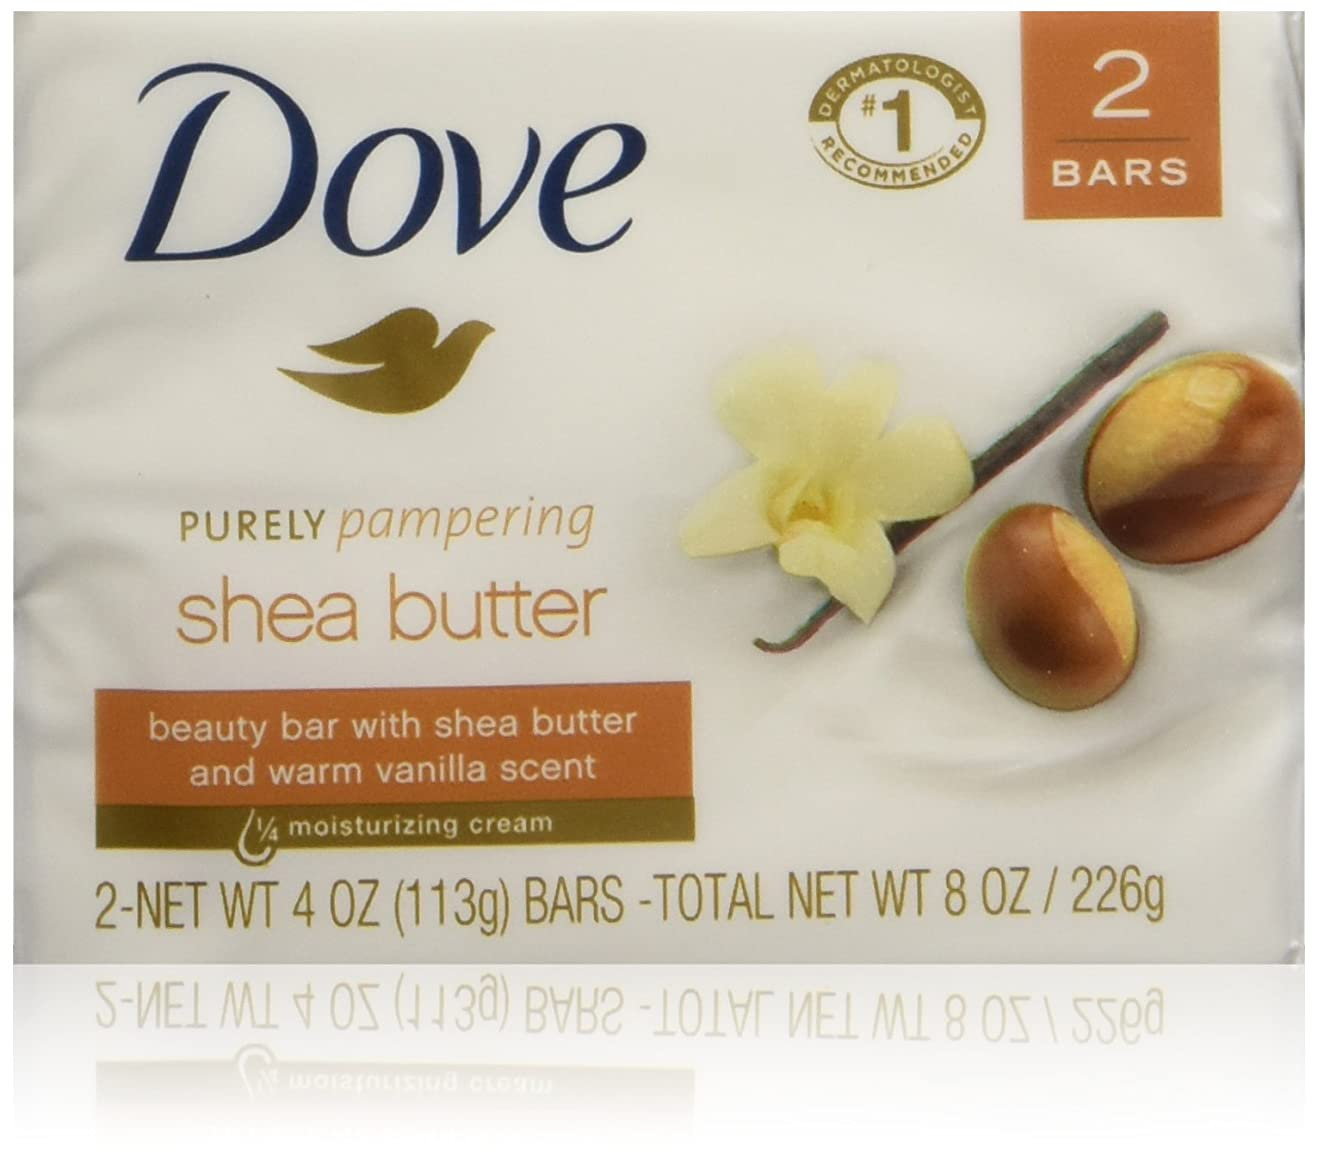 冷蔵庫存在するファンネルウェブスパイダーDove Nourishing Care Shea Butter Moisturizing Cream Beauty Bar 2-Count 120 g Soap by Dove